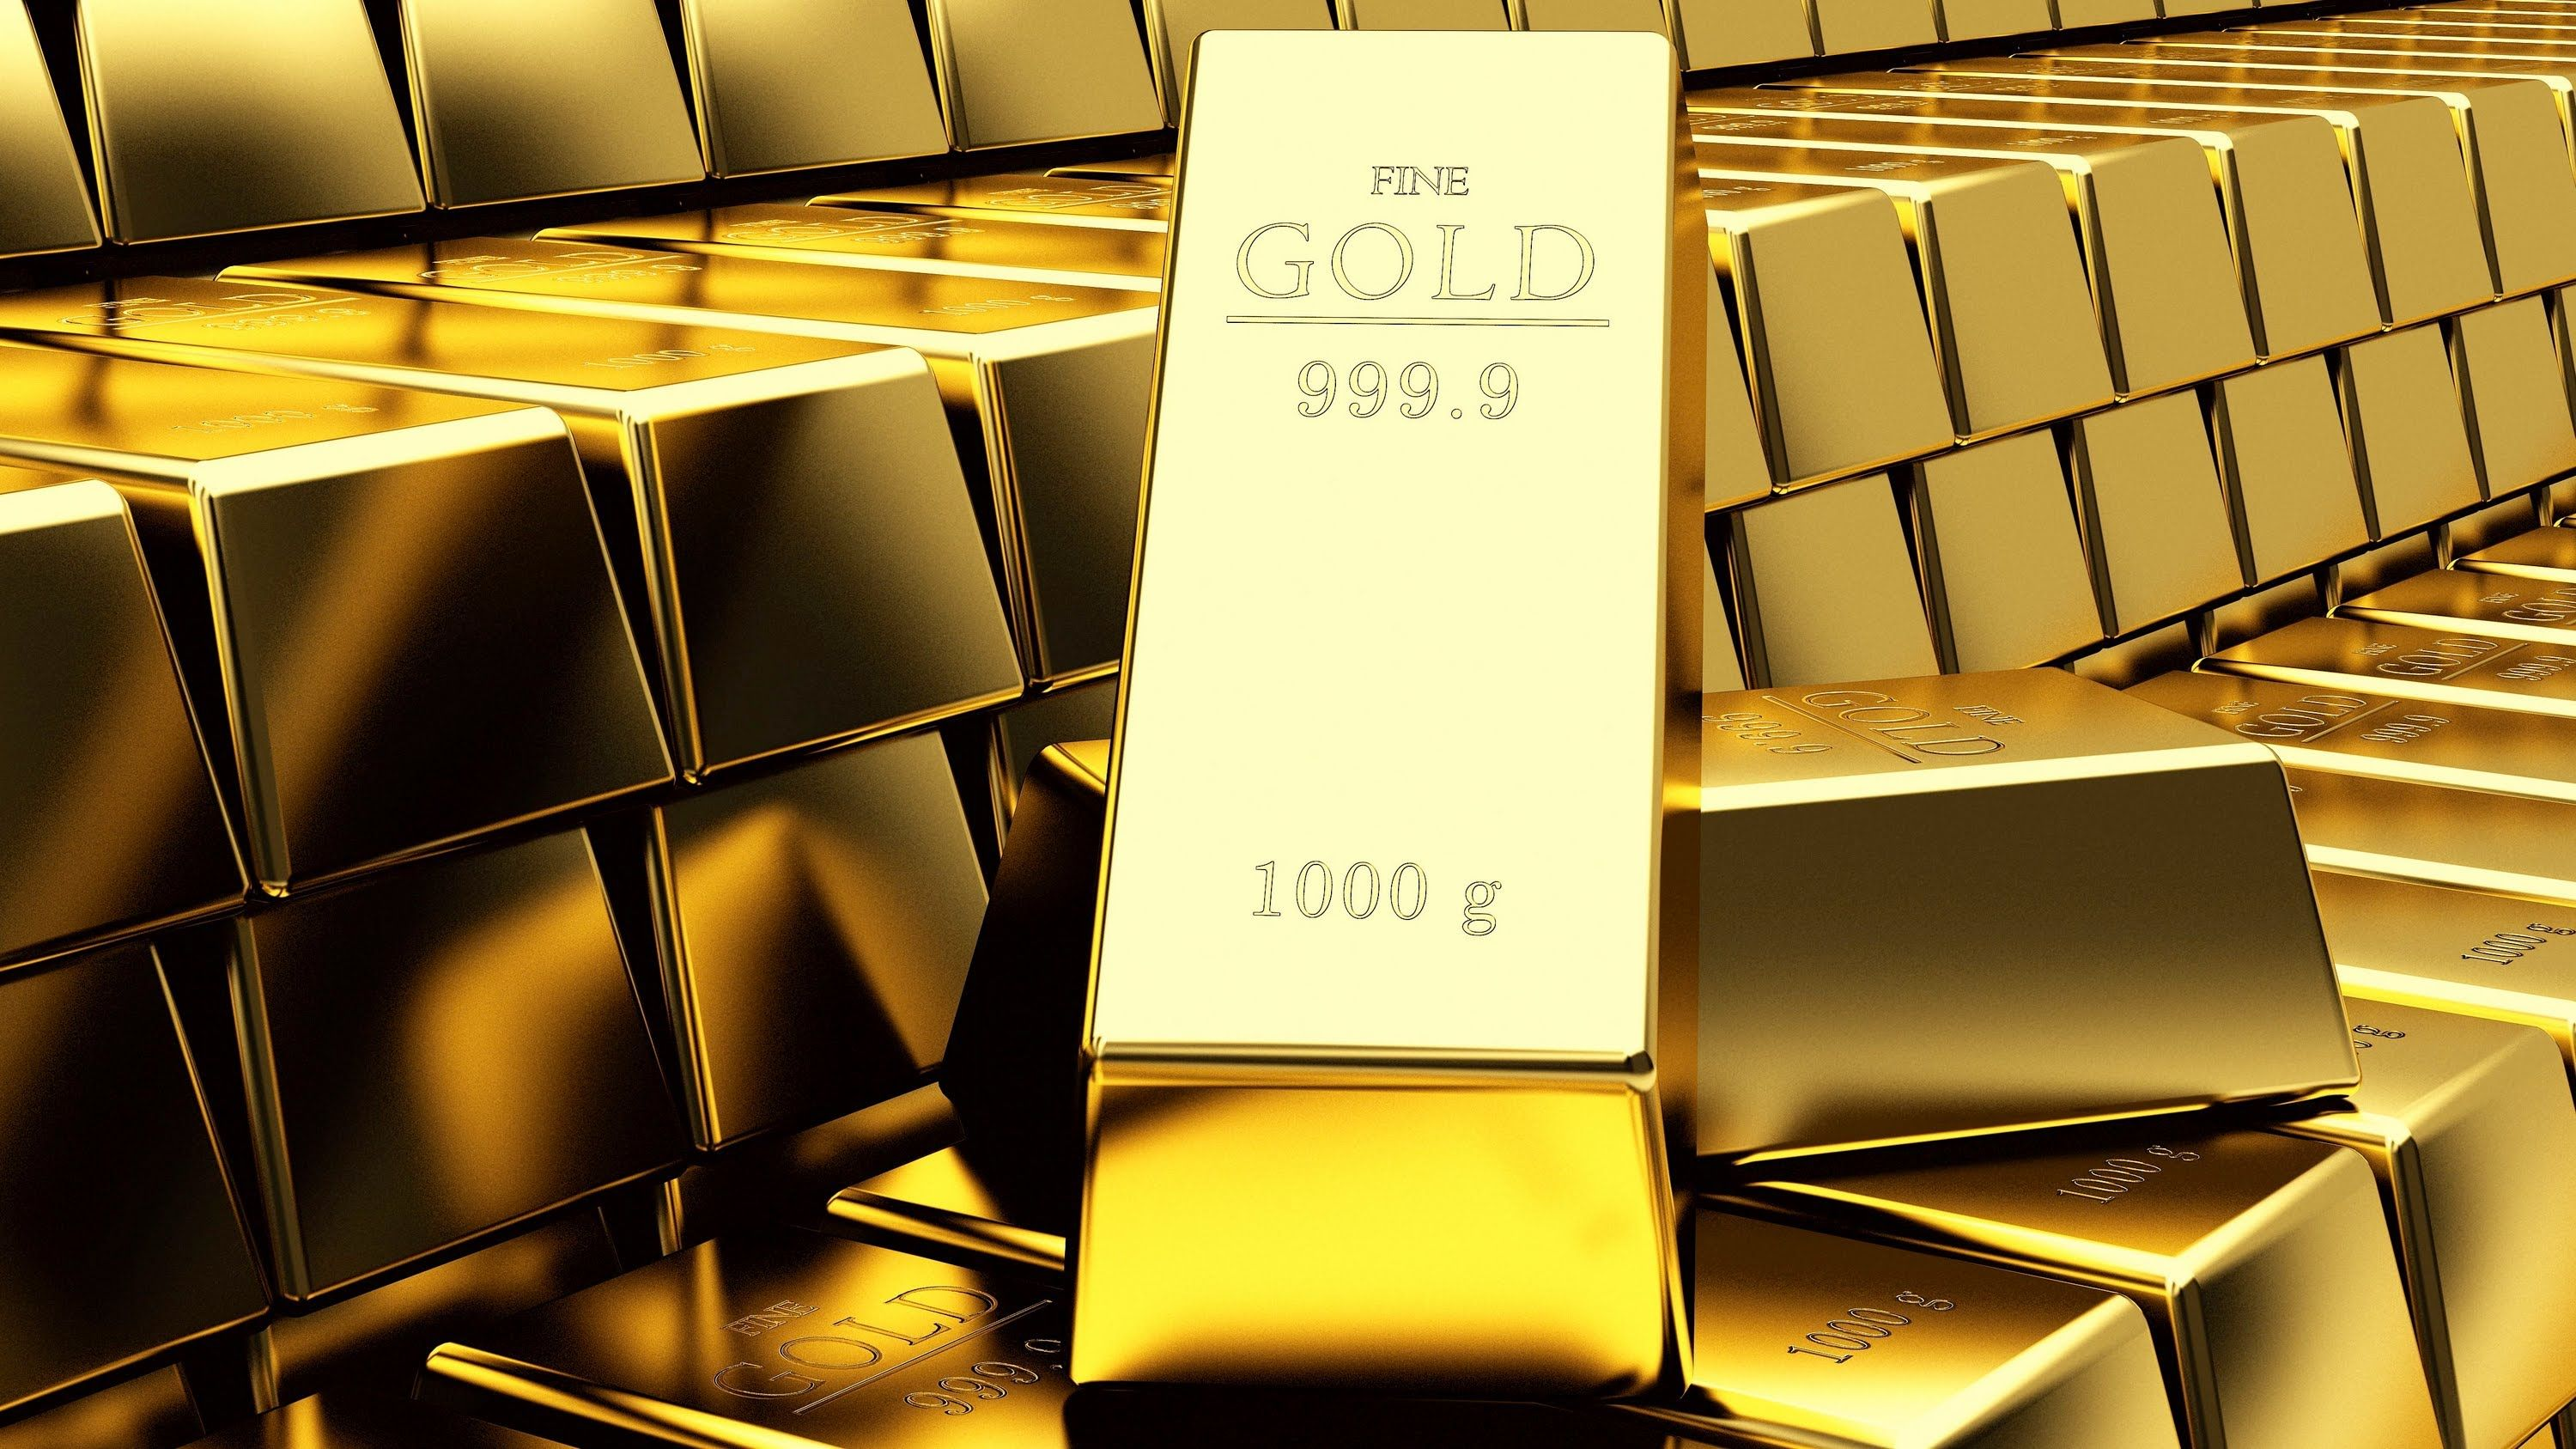 Get your Gold and Silver NOW... Click the link below to go to the ISN International Silver Network website:  http://www.isncoins.com/robbuser